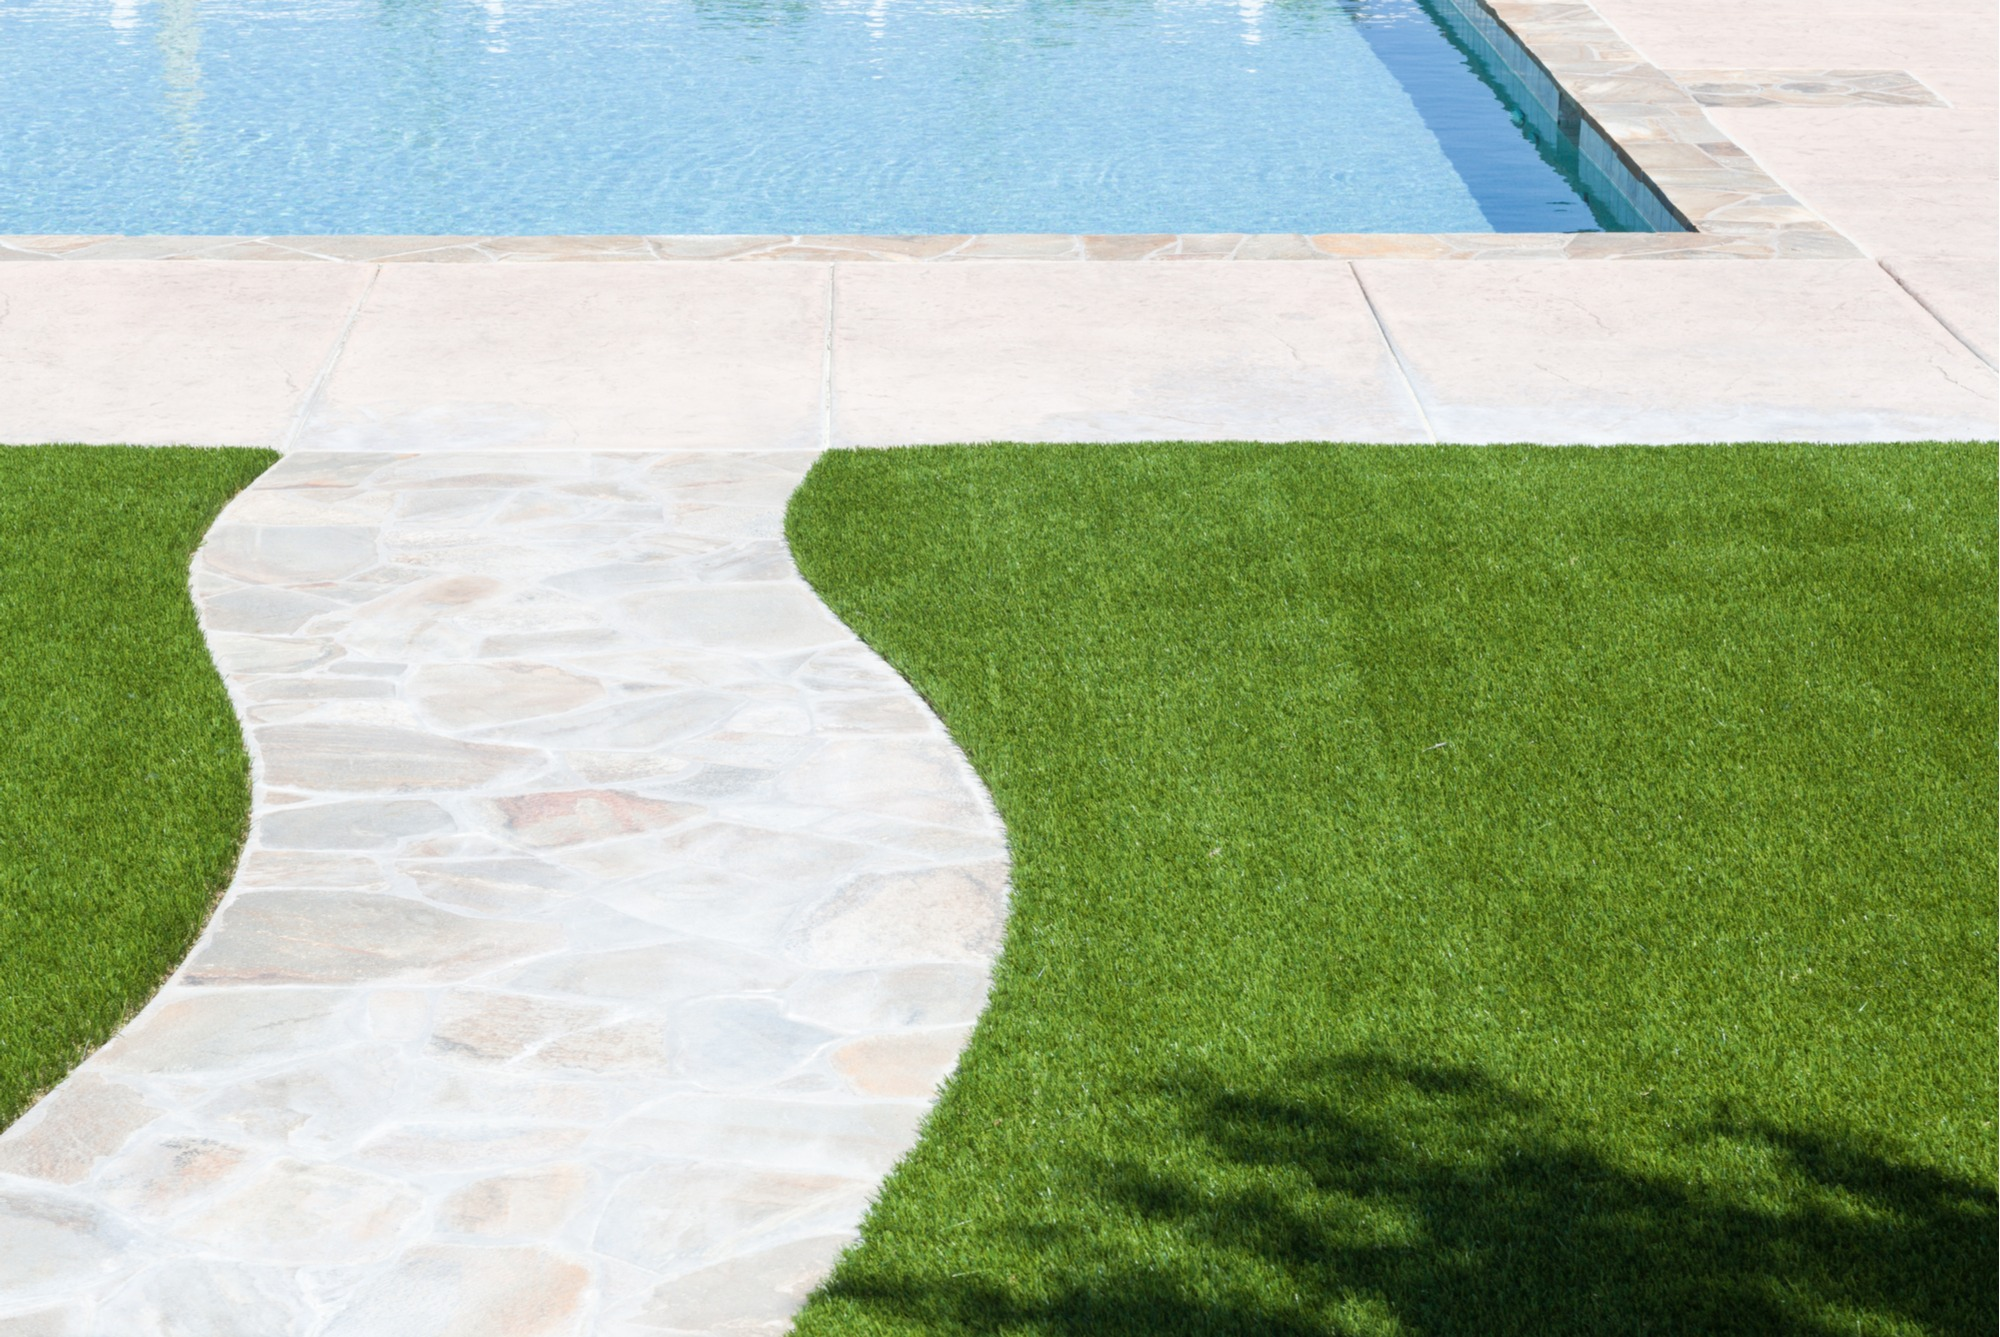 Artificial turf pros and cons - Can I Install Artificial Grass On Top Of Real Grass